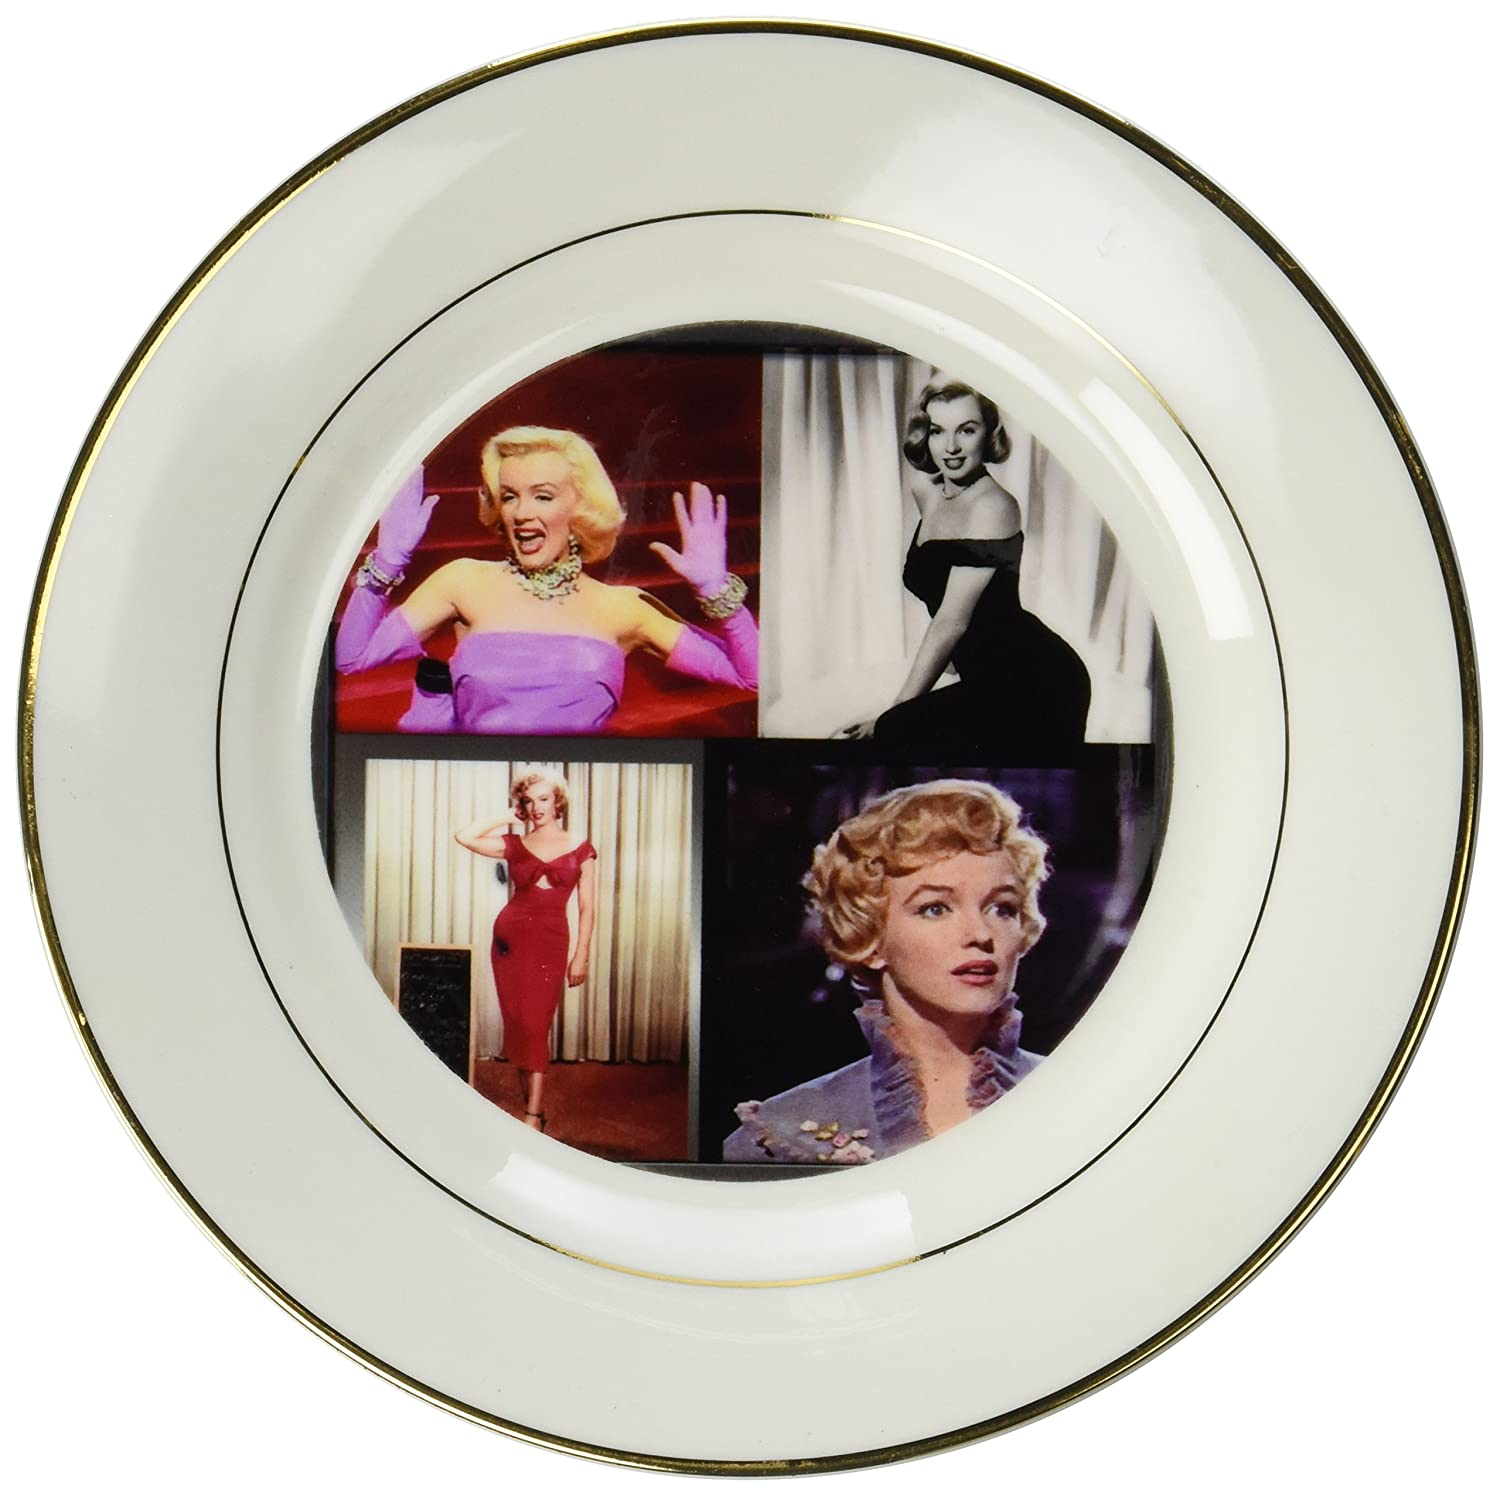 3dRose cp/_107180/_1 Marilyn Monroe Collage-Porcelain Plate 8-Inch